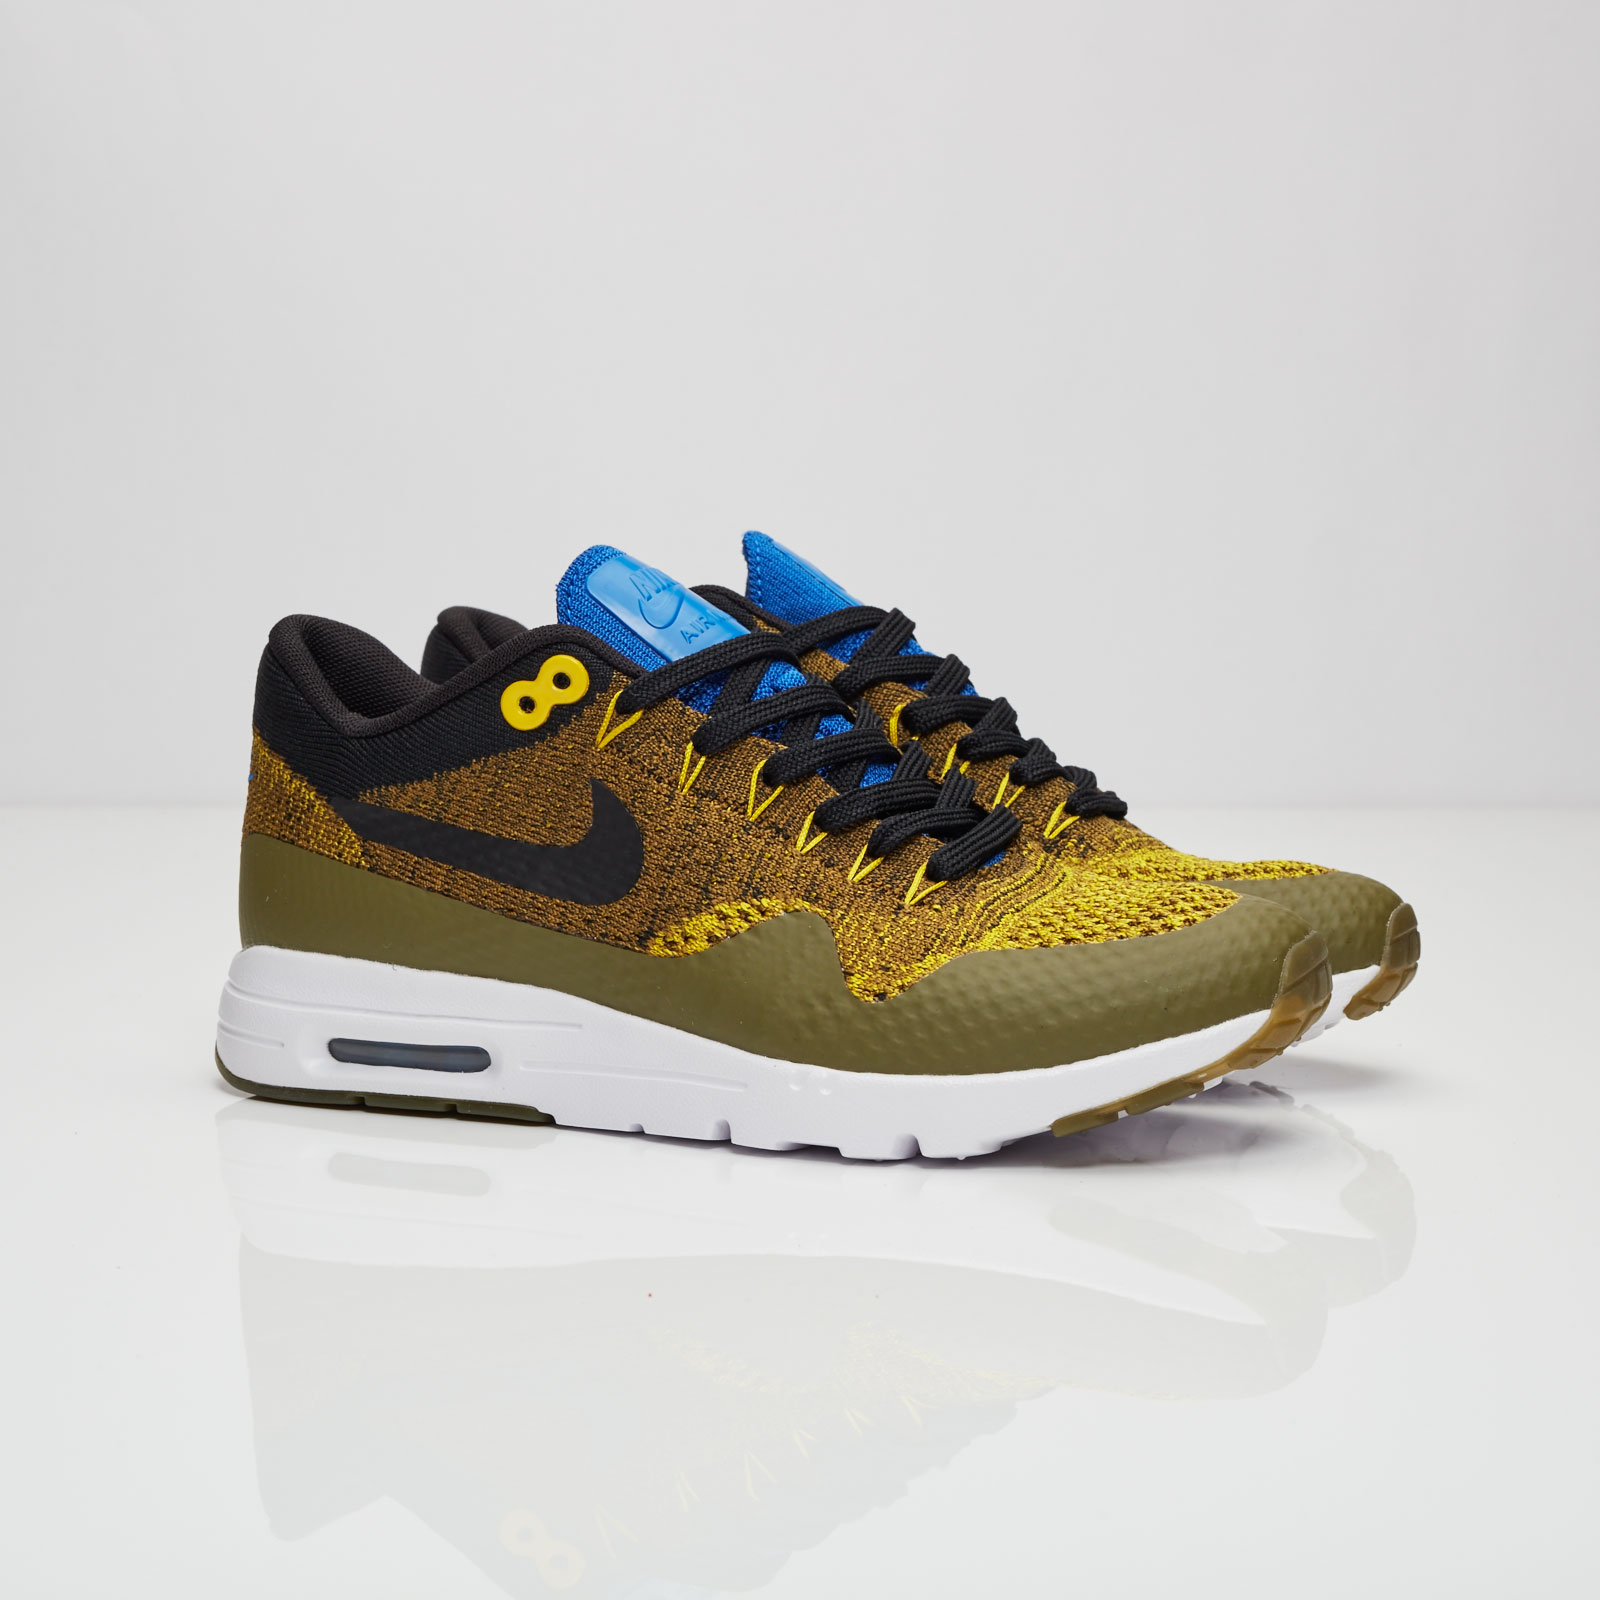 Nike W Air Max 1 Ultra Flyknit 843387 302 Sneakersnstuff